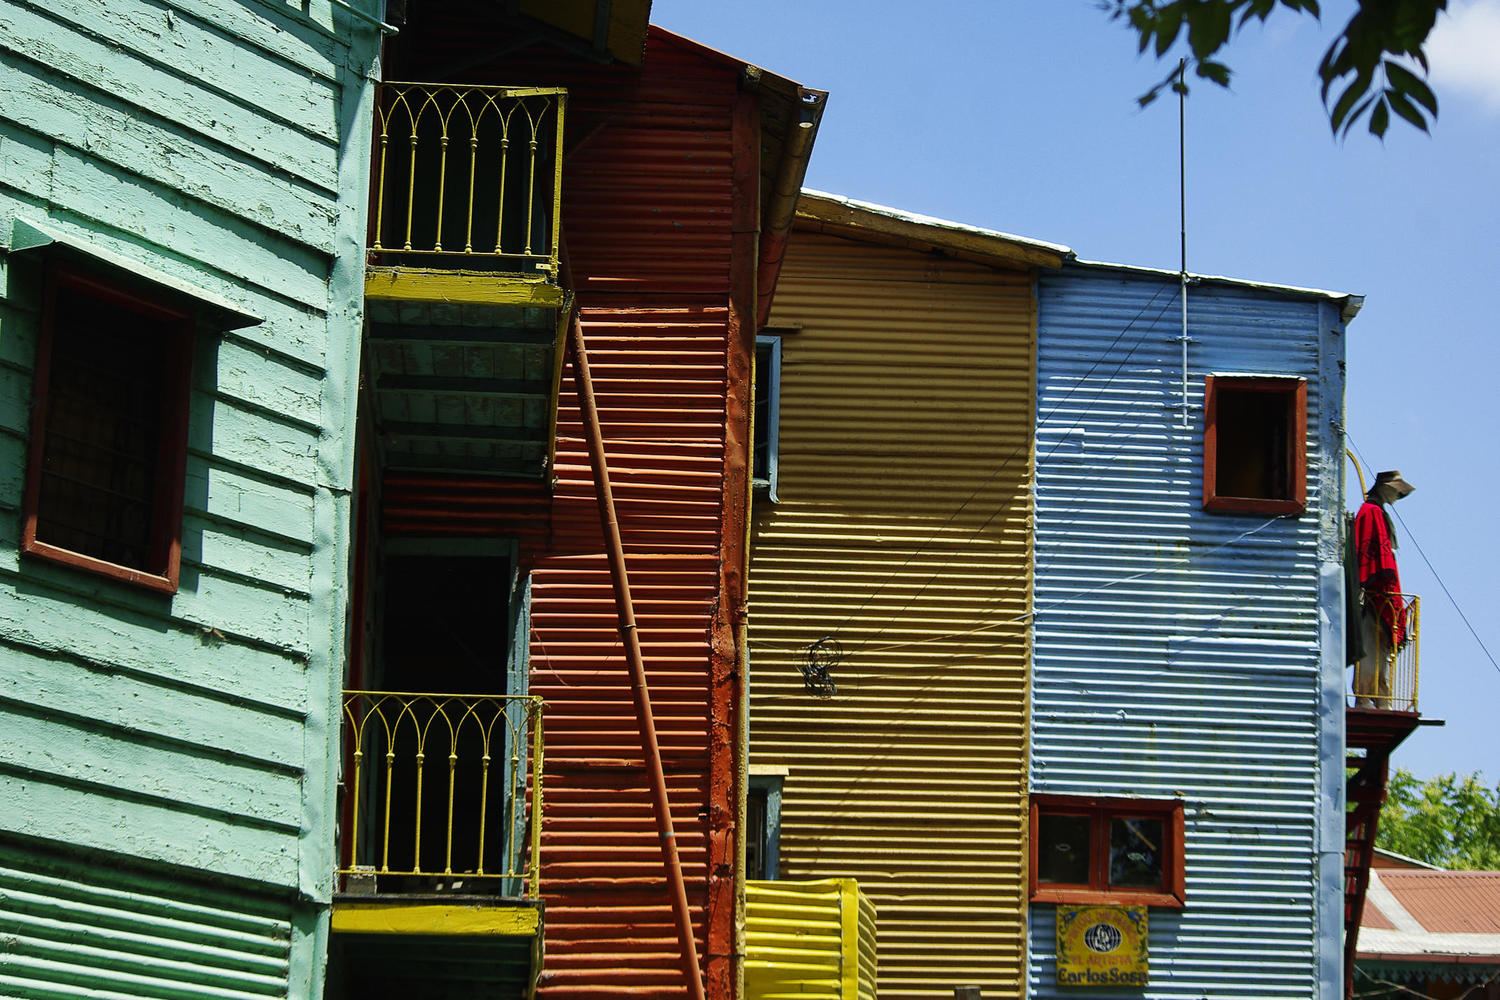 Colourful Genovese houses of La Boca in Buenos Aires